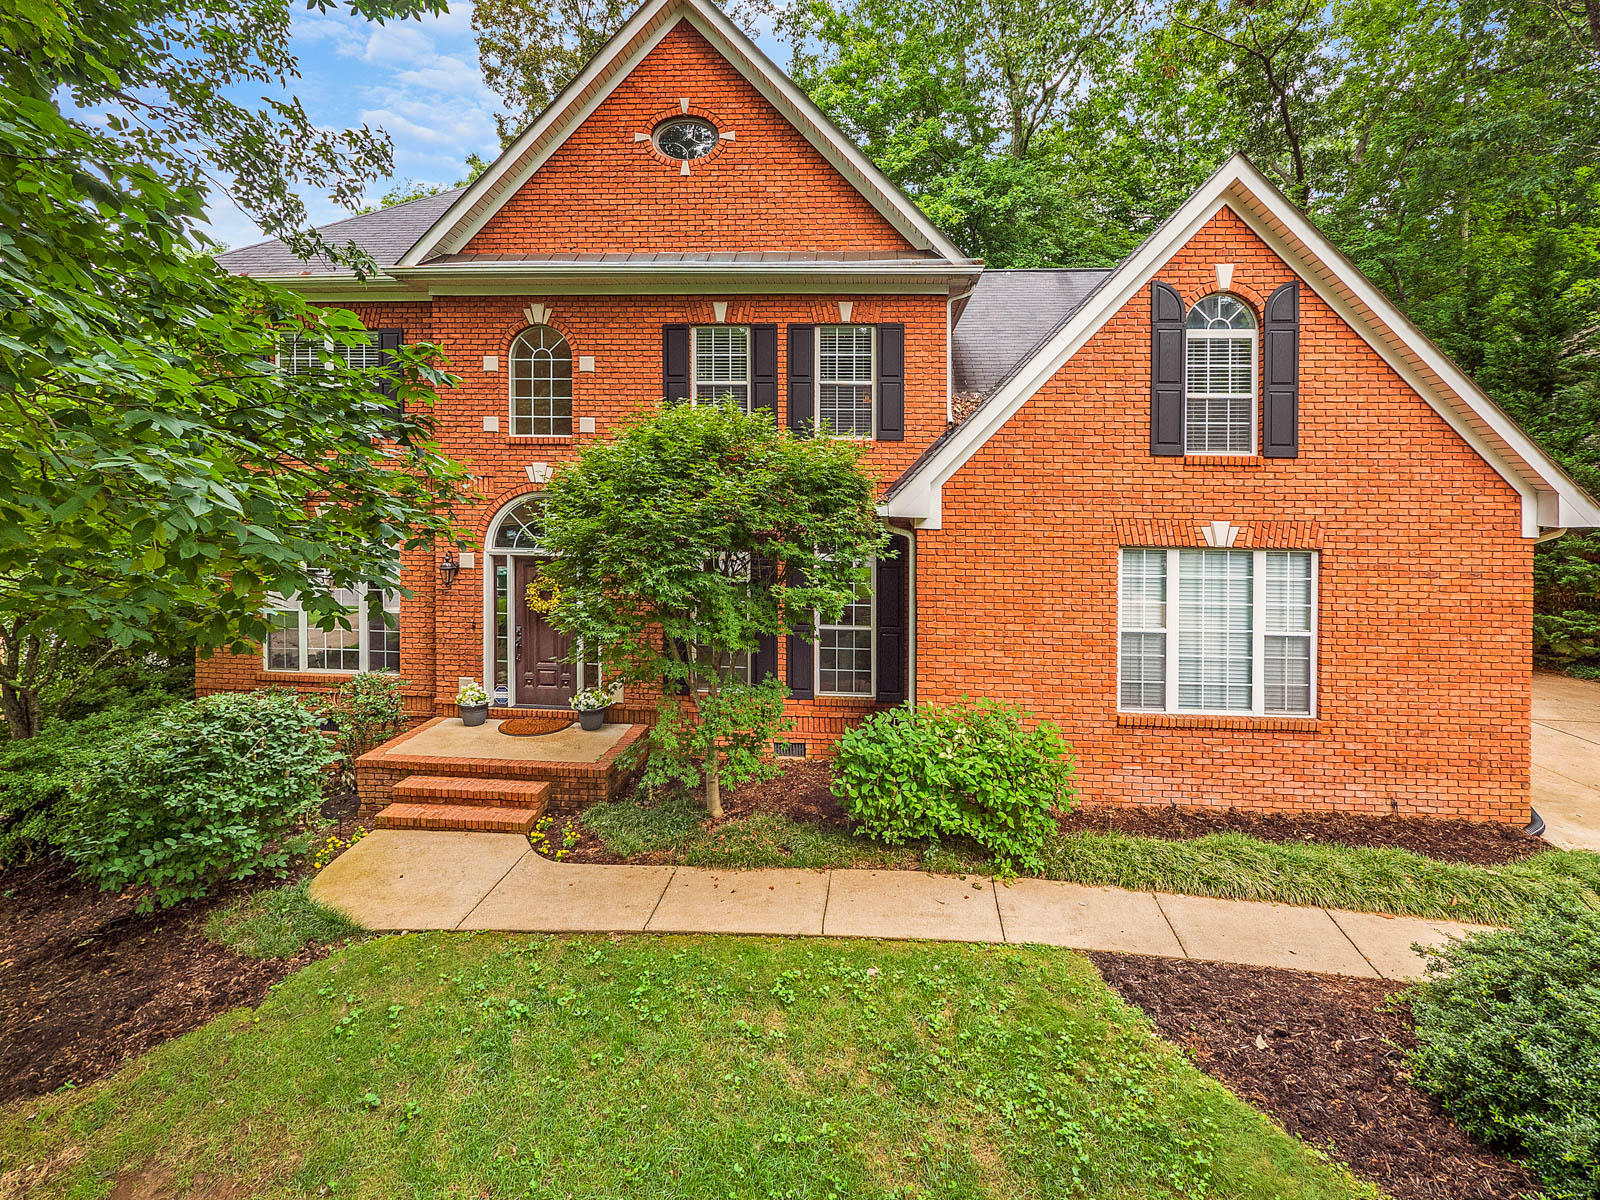 2307 Covington Cove Ln, Signal Mountain, TN 37377